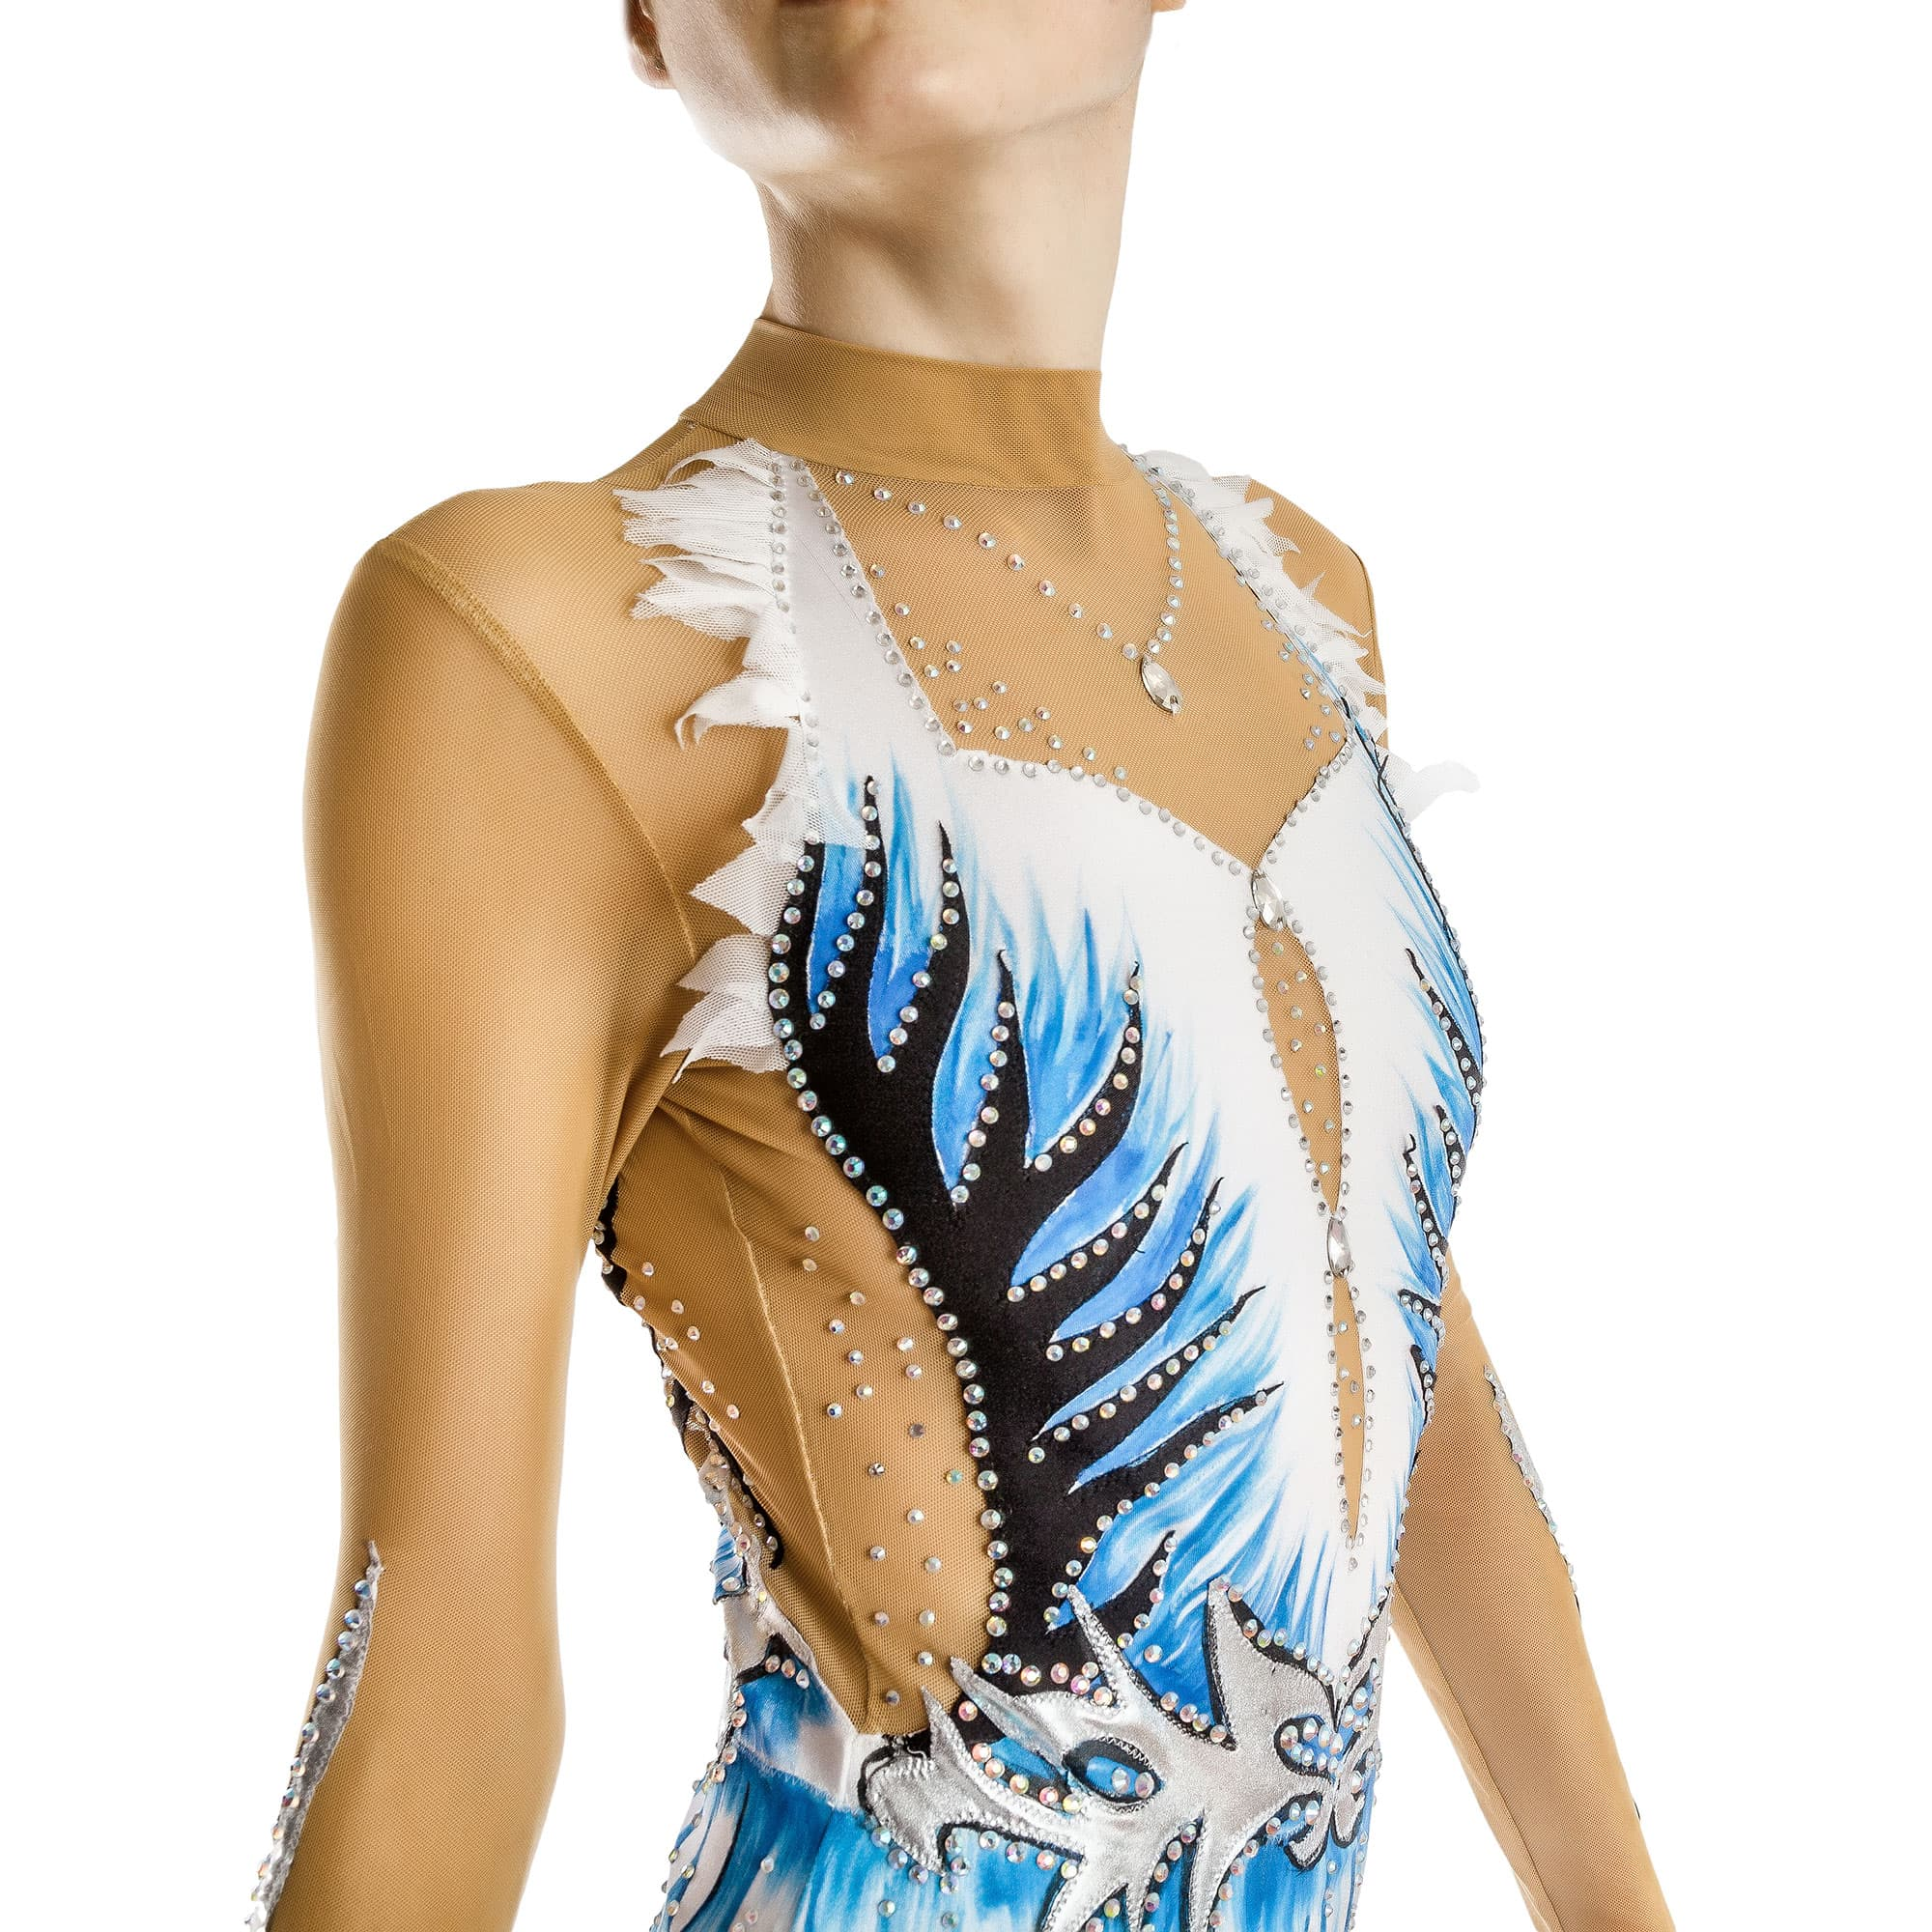 Rhythmic Gymnastics Leotard № 176 could be sewn as Rhythmic Gymnastics Dress, Ice Figure Skating Dress, Acrobatic Gymnastics Costume, Baton Twirling Suit or Dance Leotard. An Hanger and trim neckline, decorated with a necklace of crystals. Waist and sleeves are decorated with complex artistic appliques